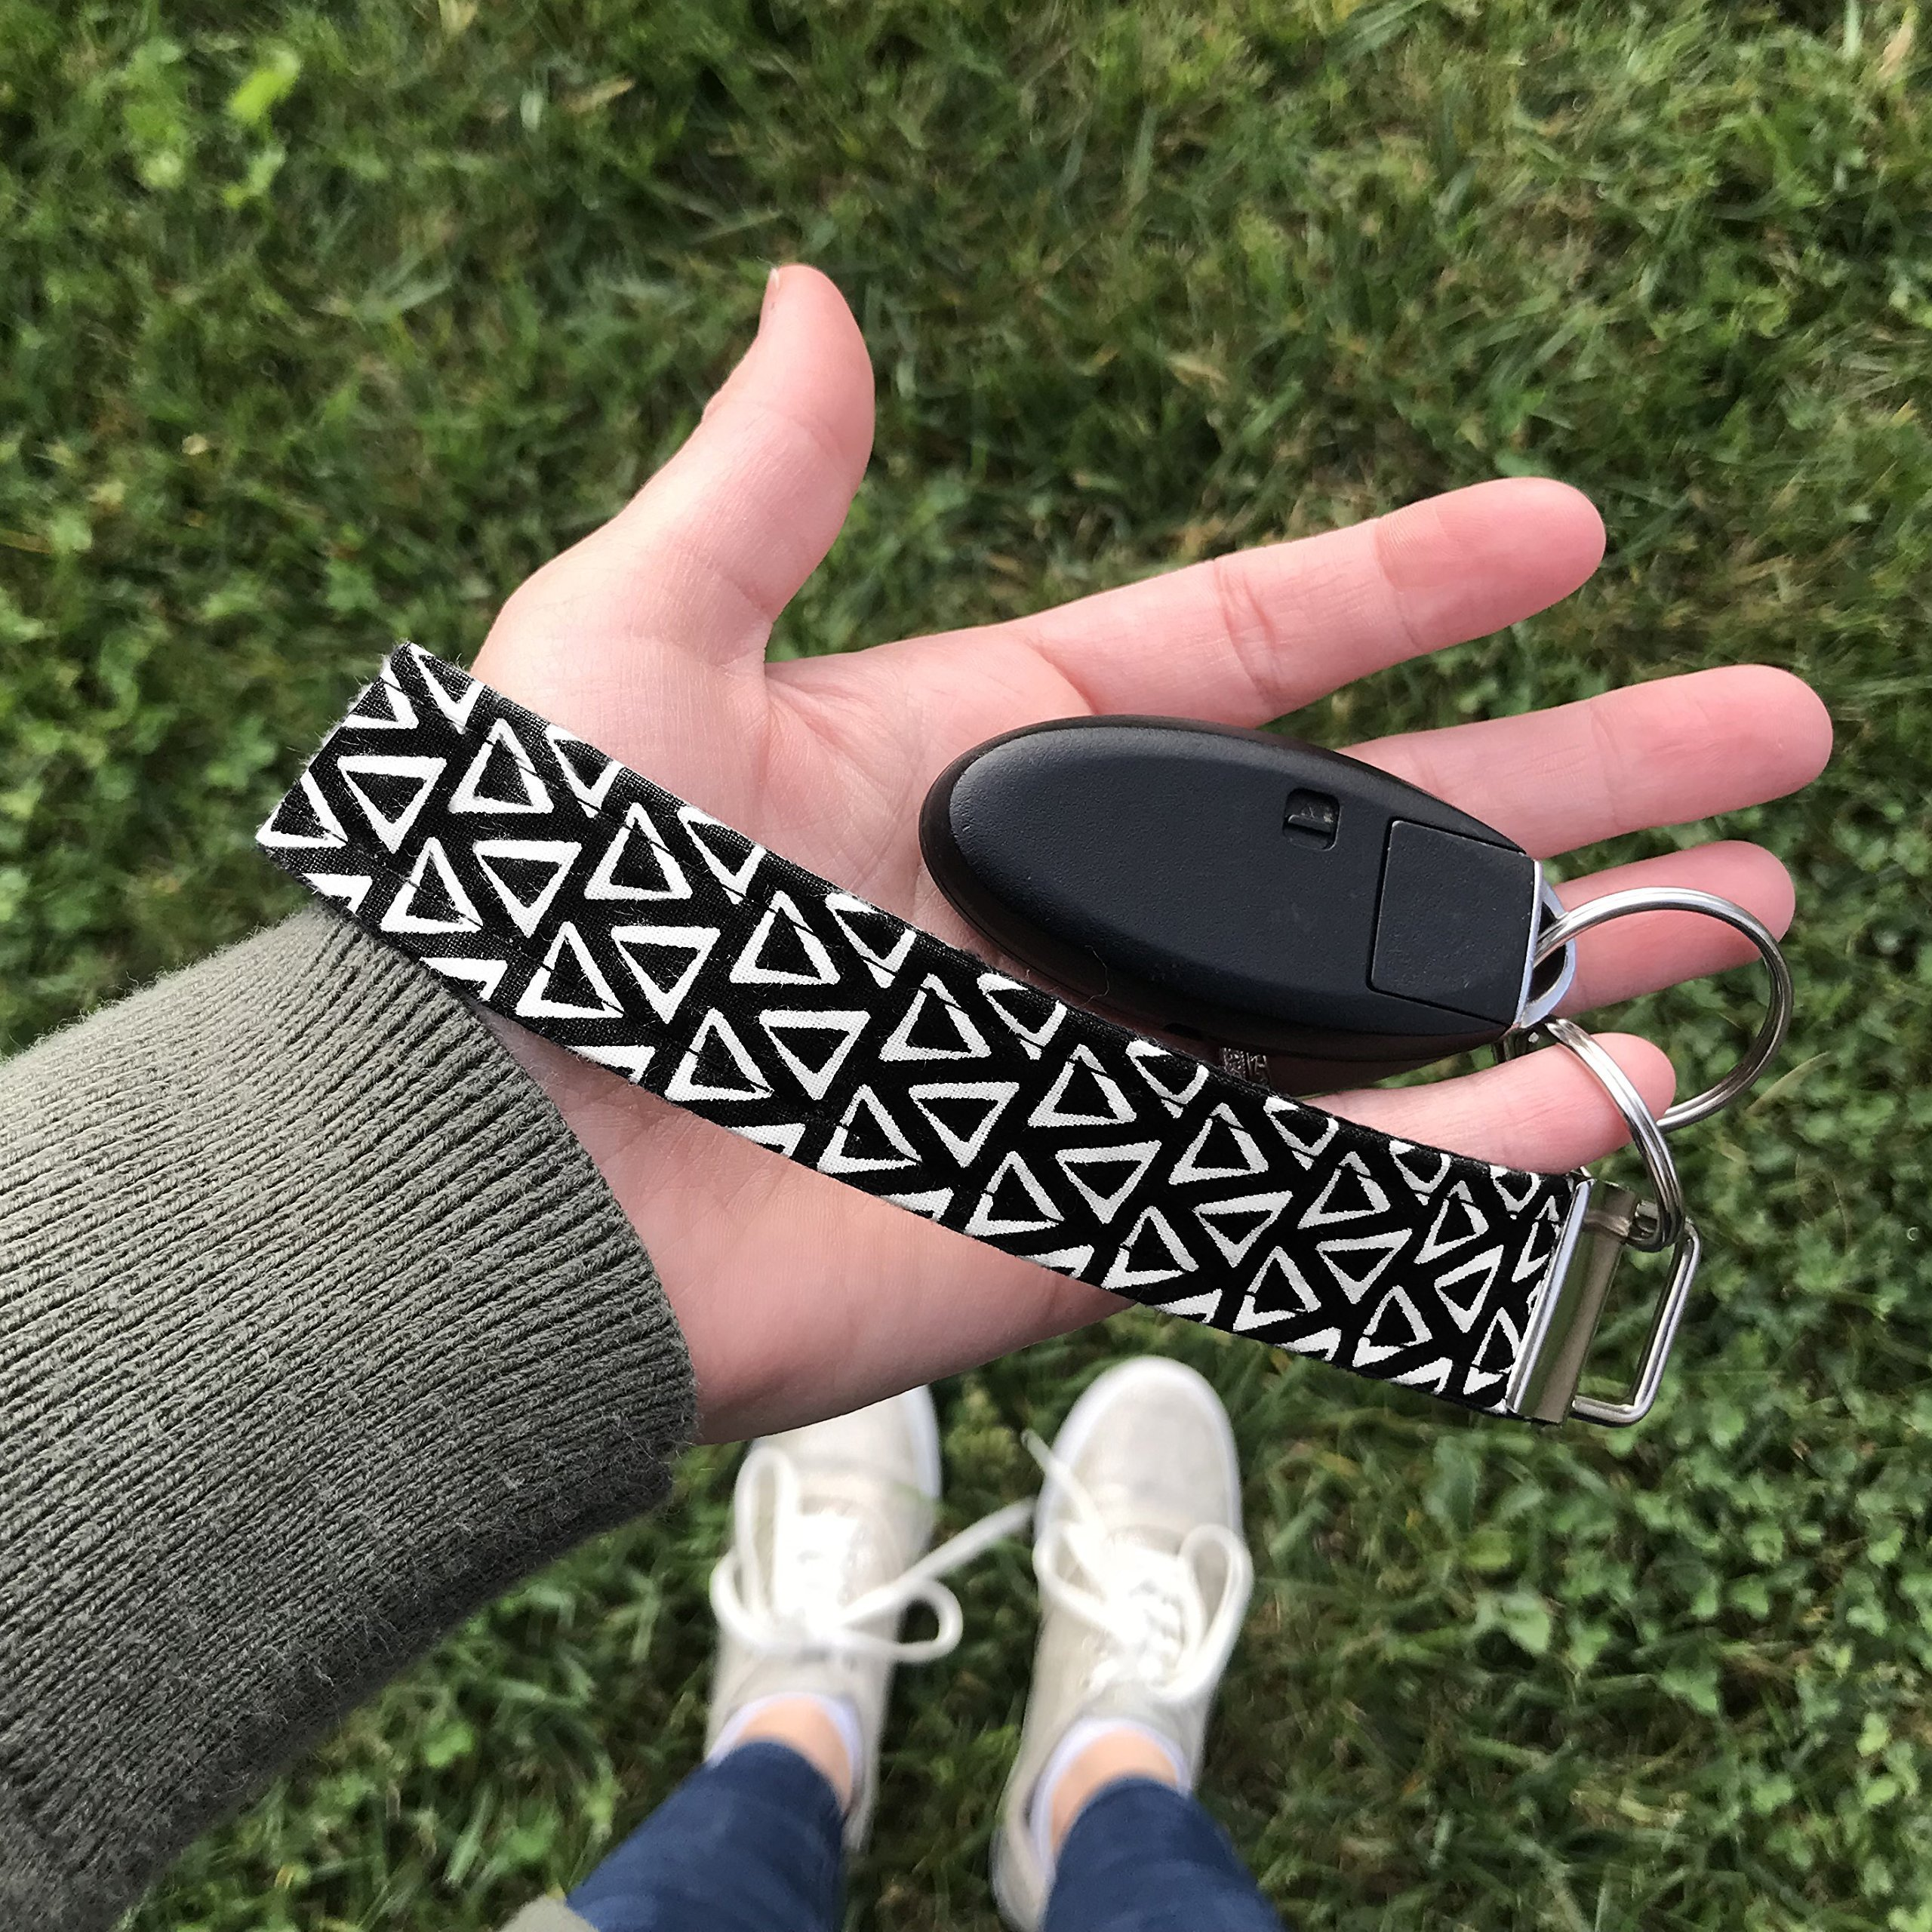 Modern Key Fob Keychain in Black and White Triangles for Keys